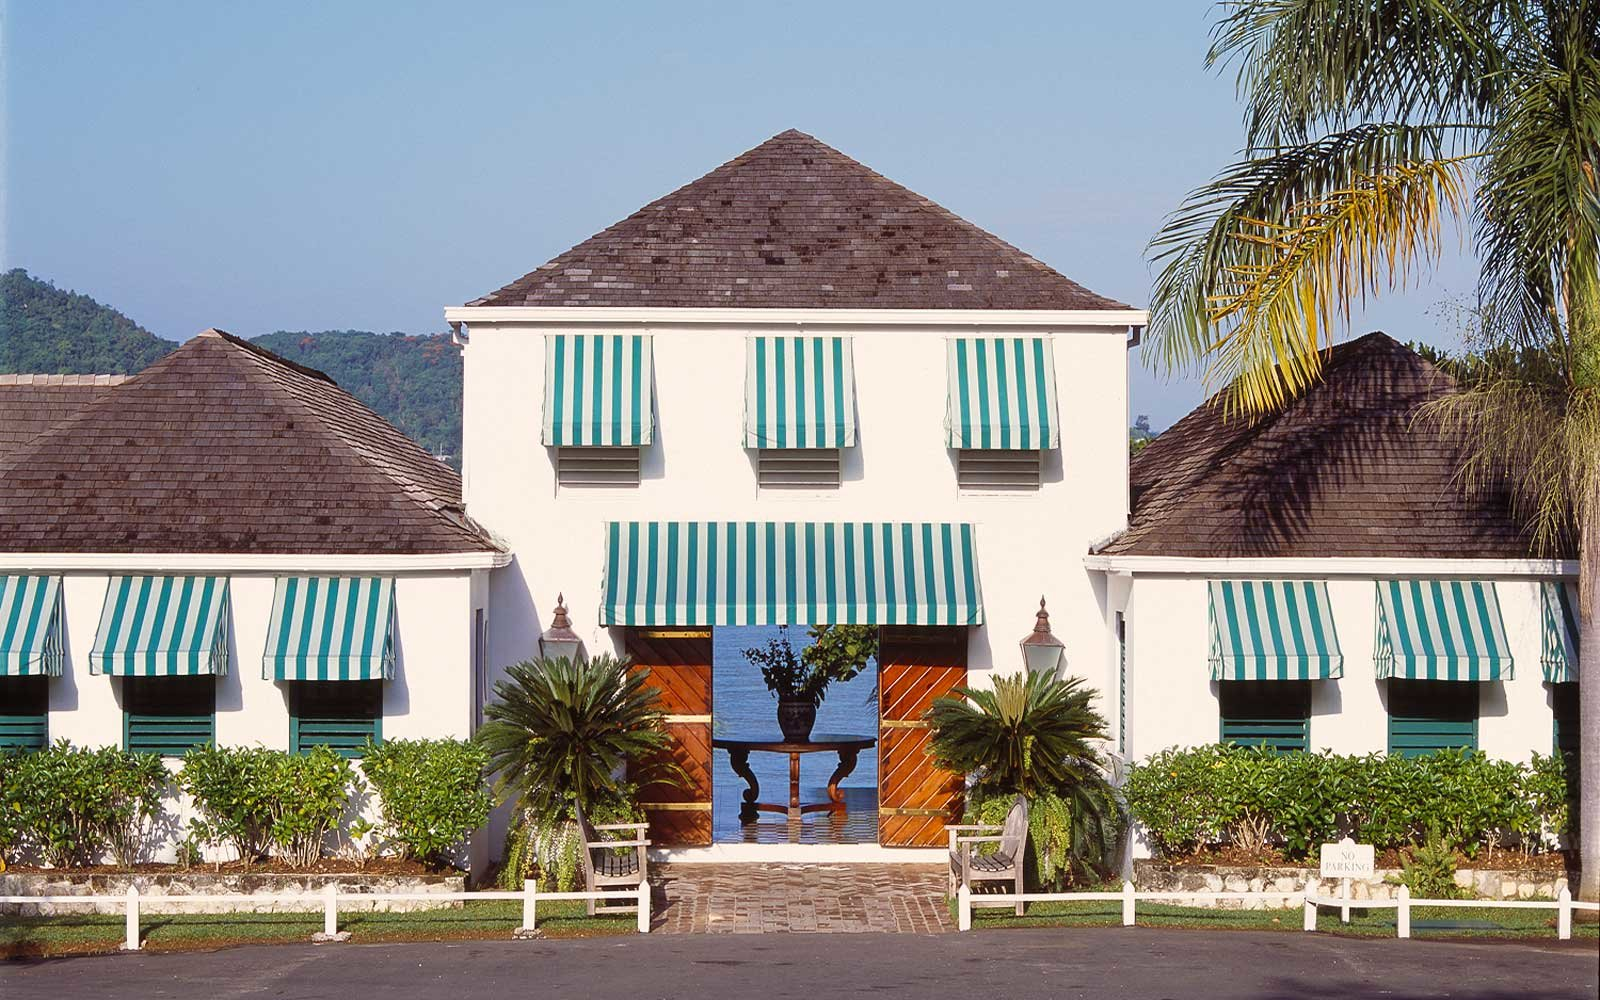 8. Round Hill Hotel & Villas in Montego Bay,  Jamaica